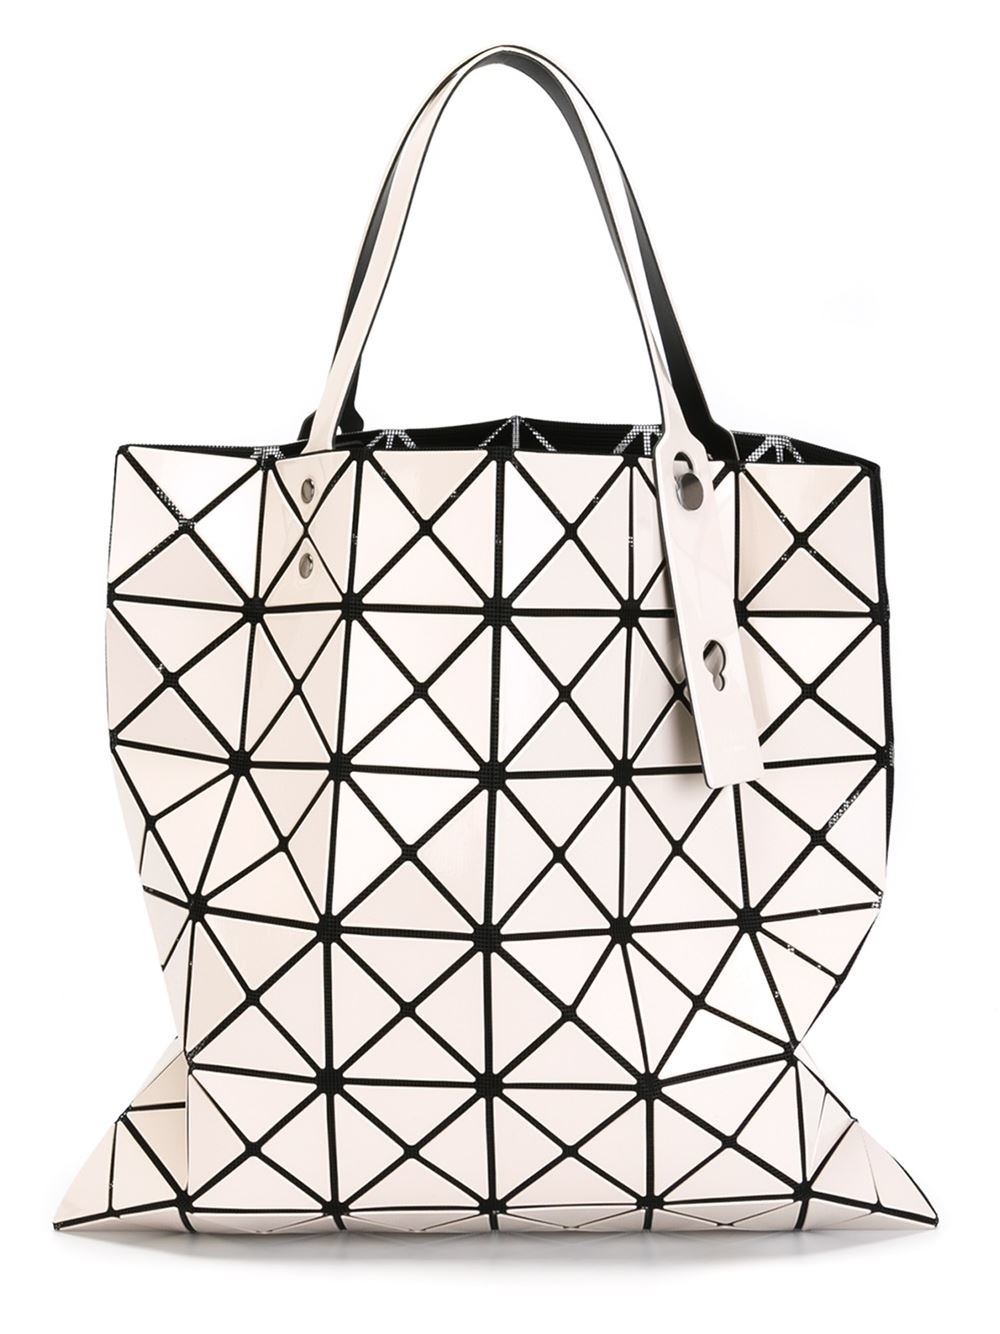 962d178777a2 Lyst - Bao Bao Issey Miyake  lucent Basic  Tote in Natural